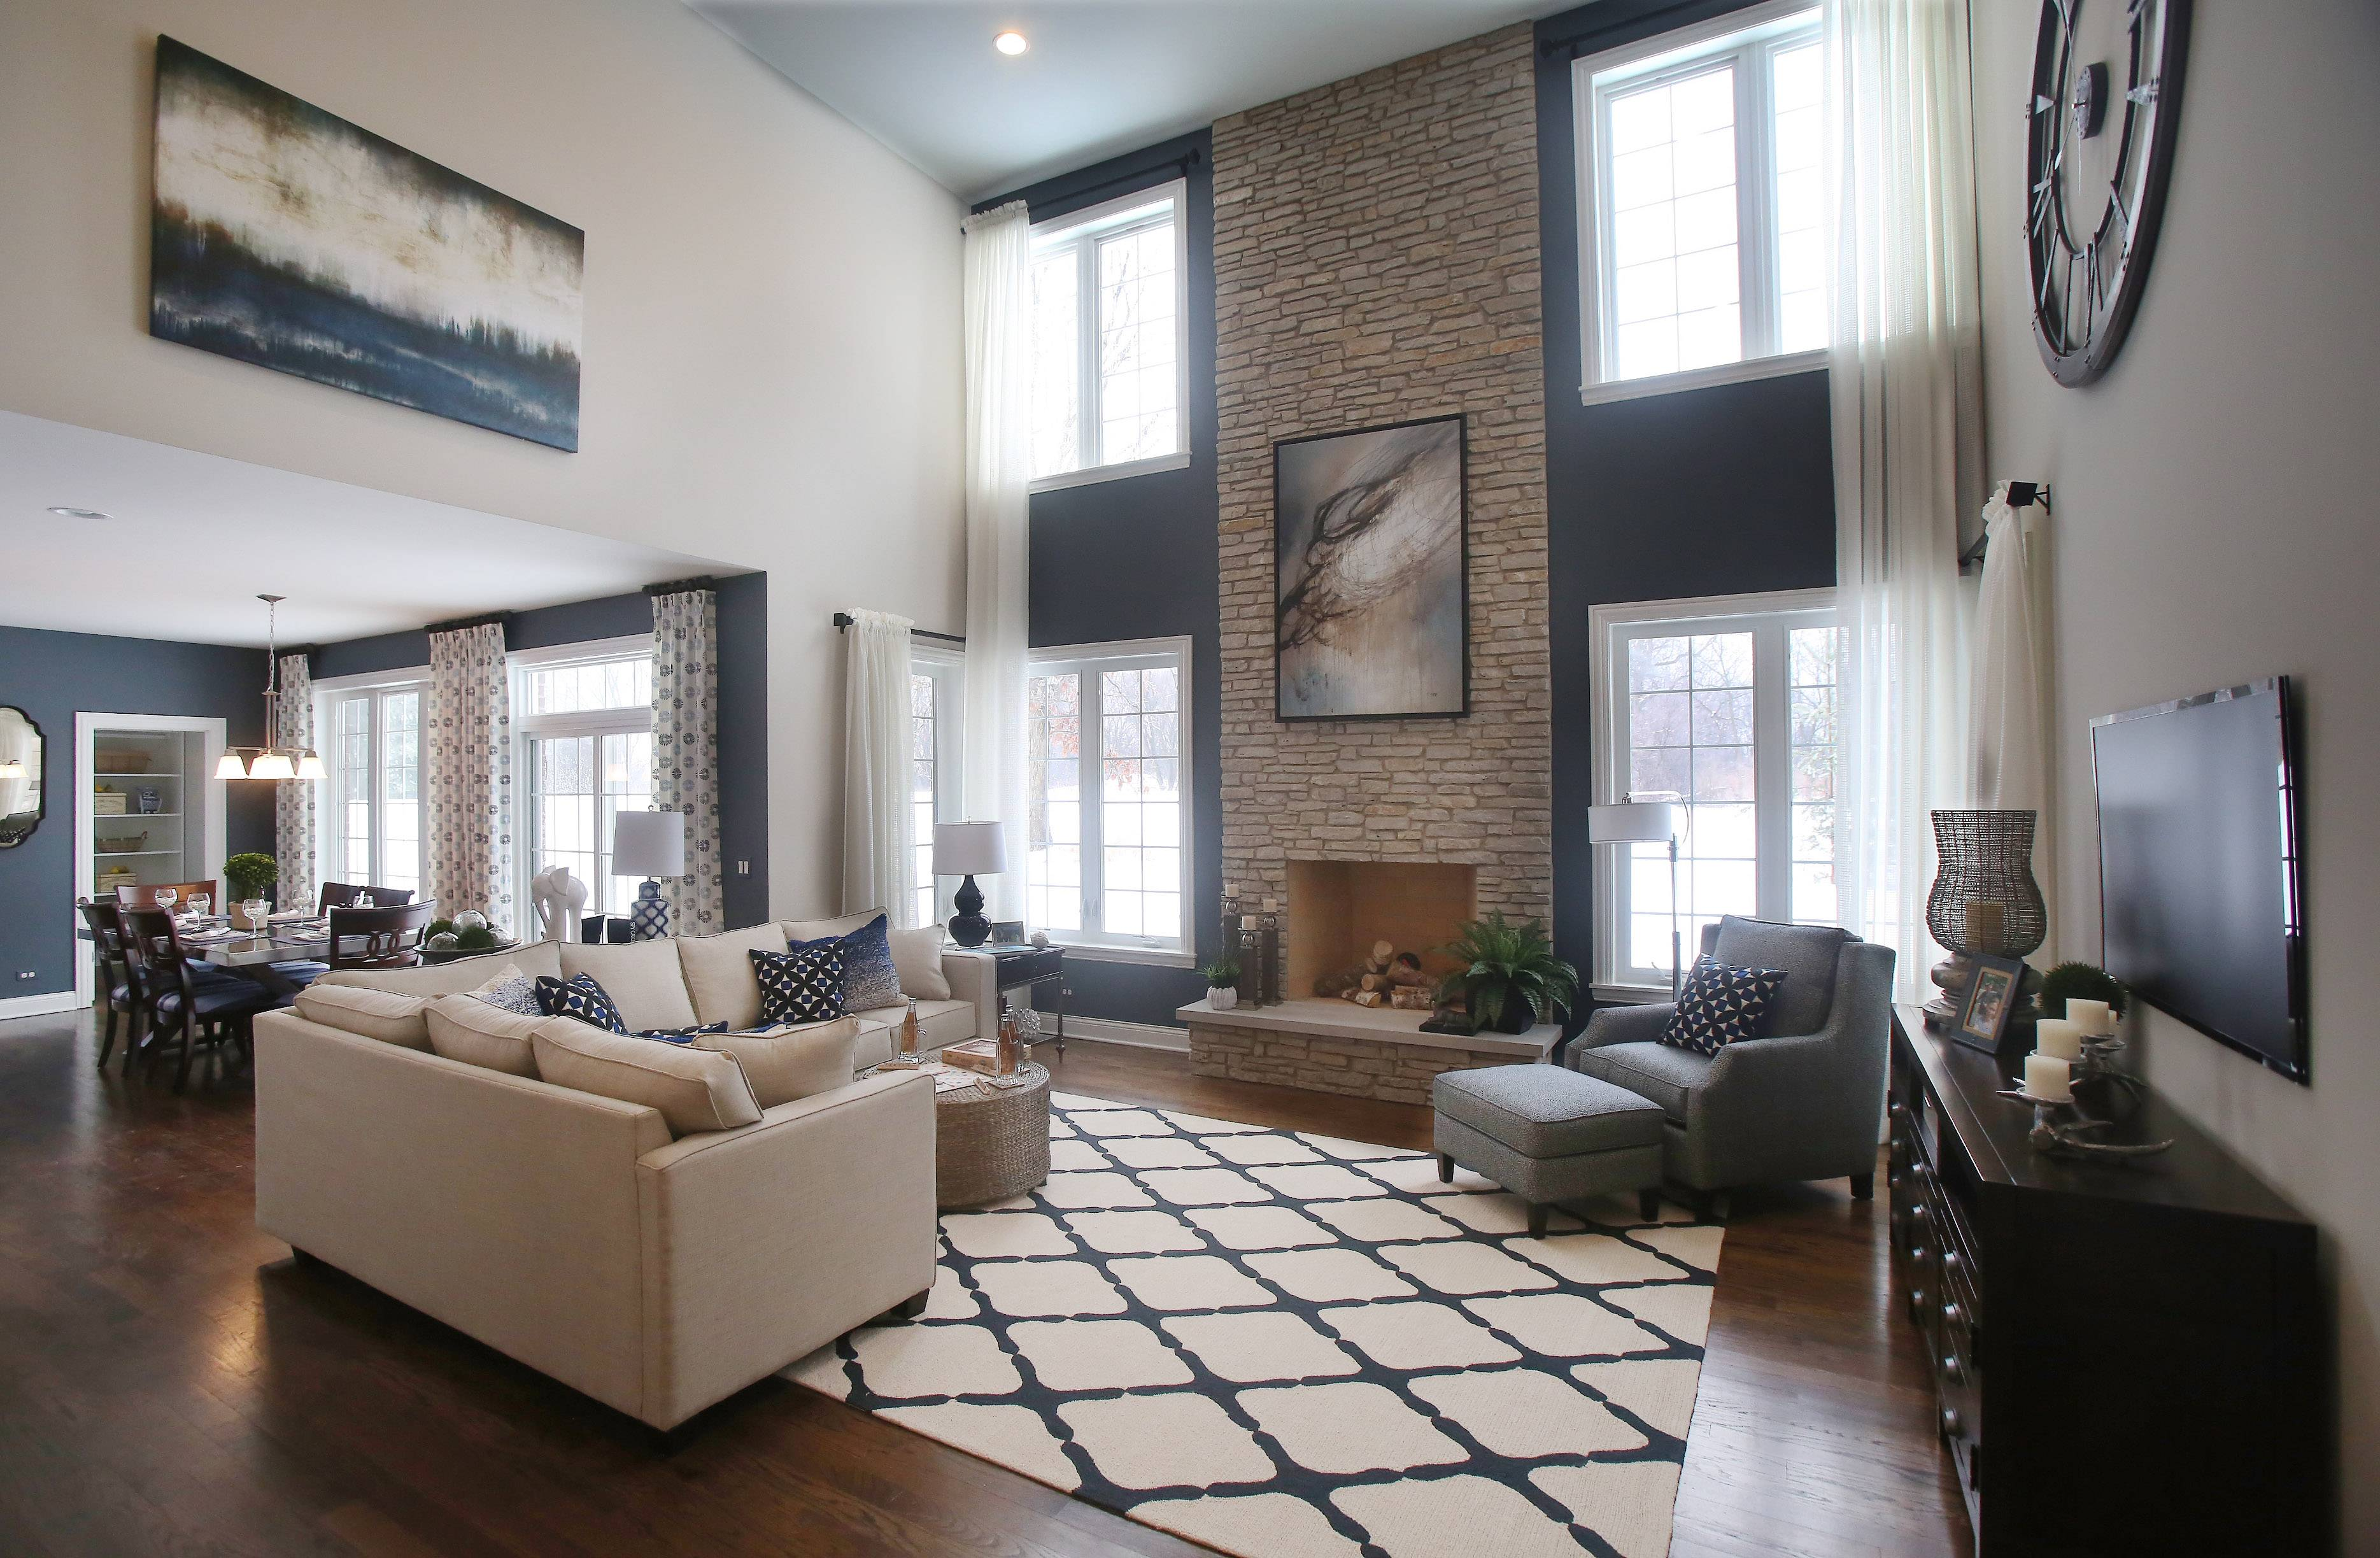 Decor Was Selected To Complement The Two Story Fieldstone Fireplace In The  Linden Model At